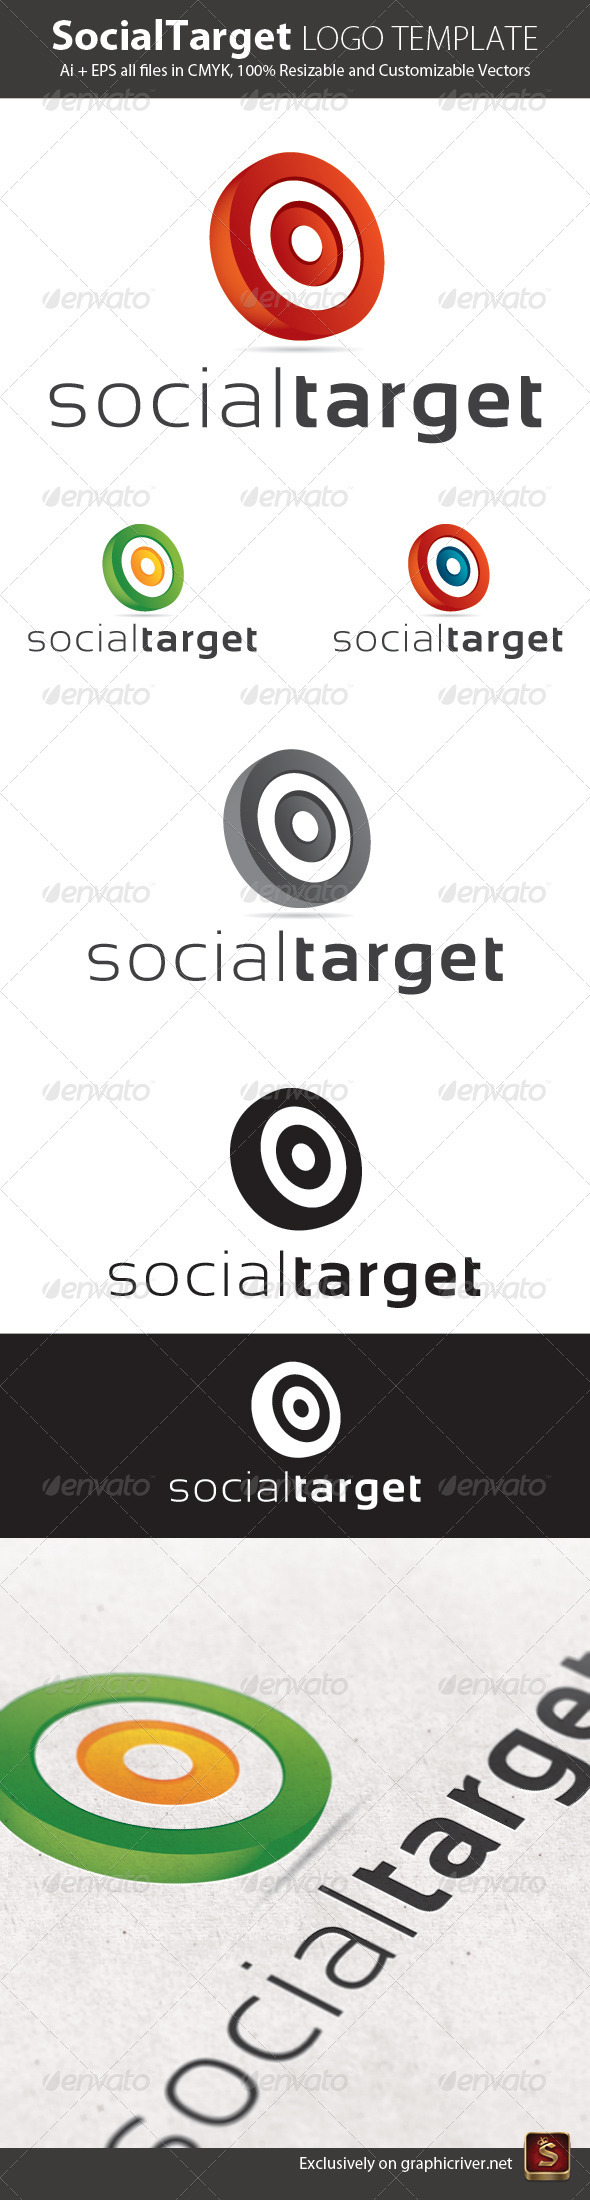 Social Target Logo Template - Vector Abstract